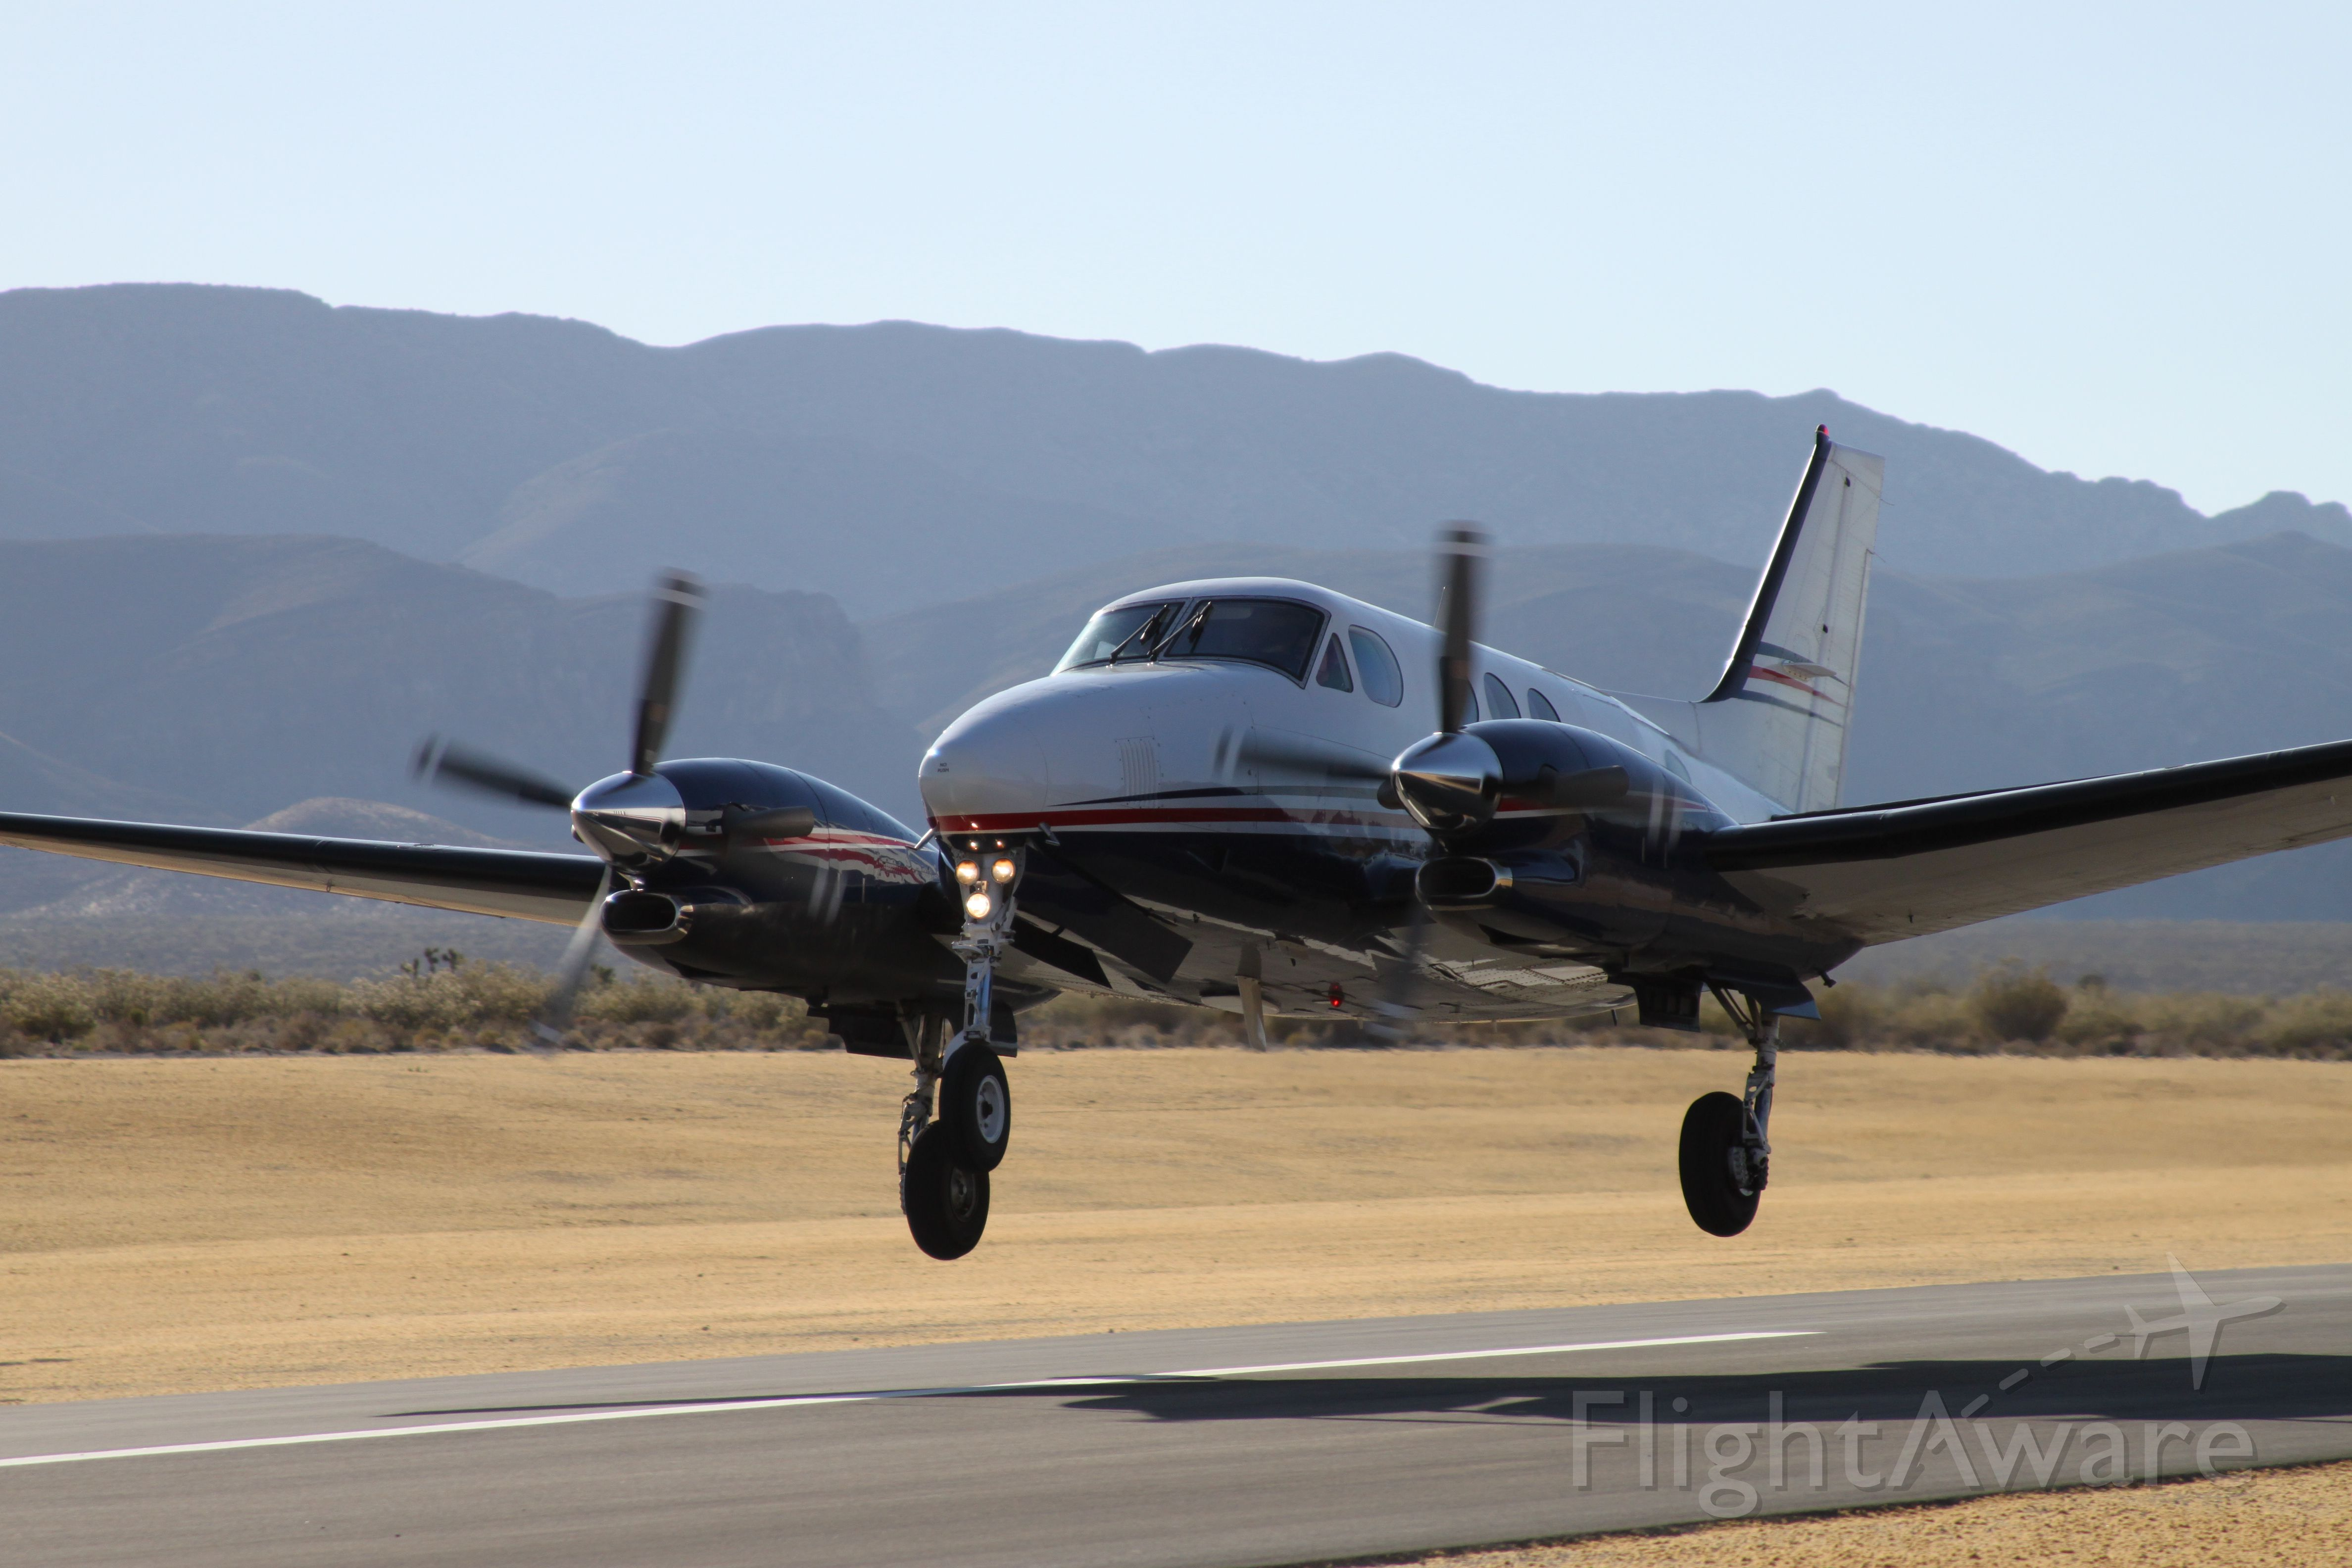 Beechcraft King Air 90 (N335AP) - Freshly paved runway - airport manager said we were probably the 6th aircraft to use it